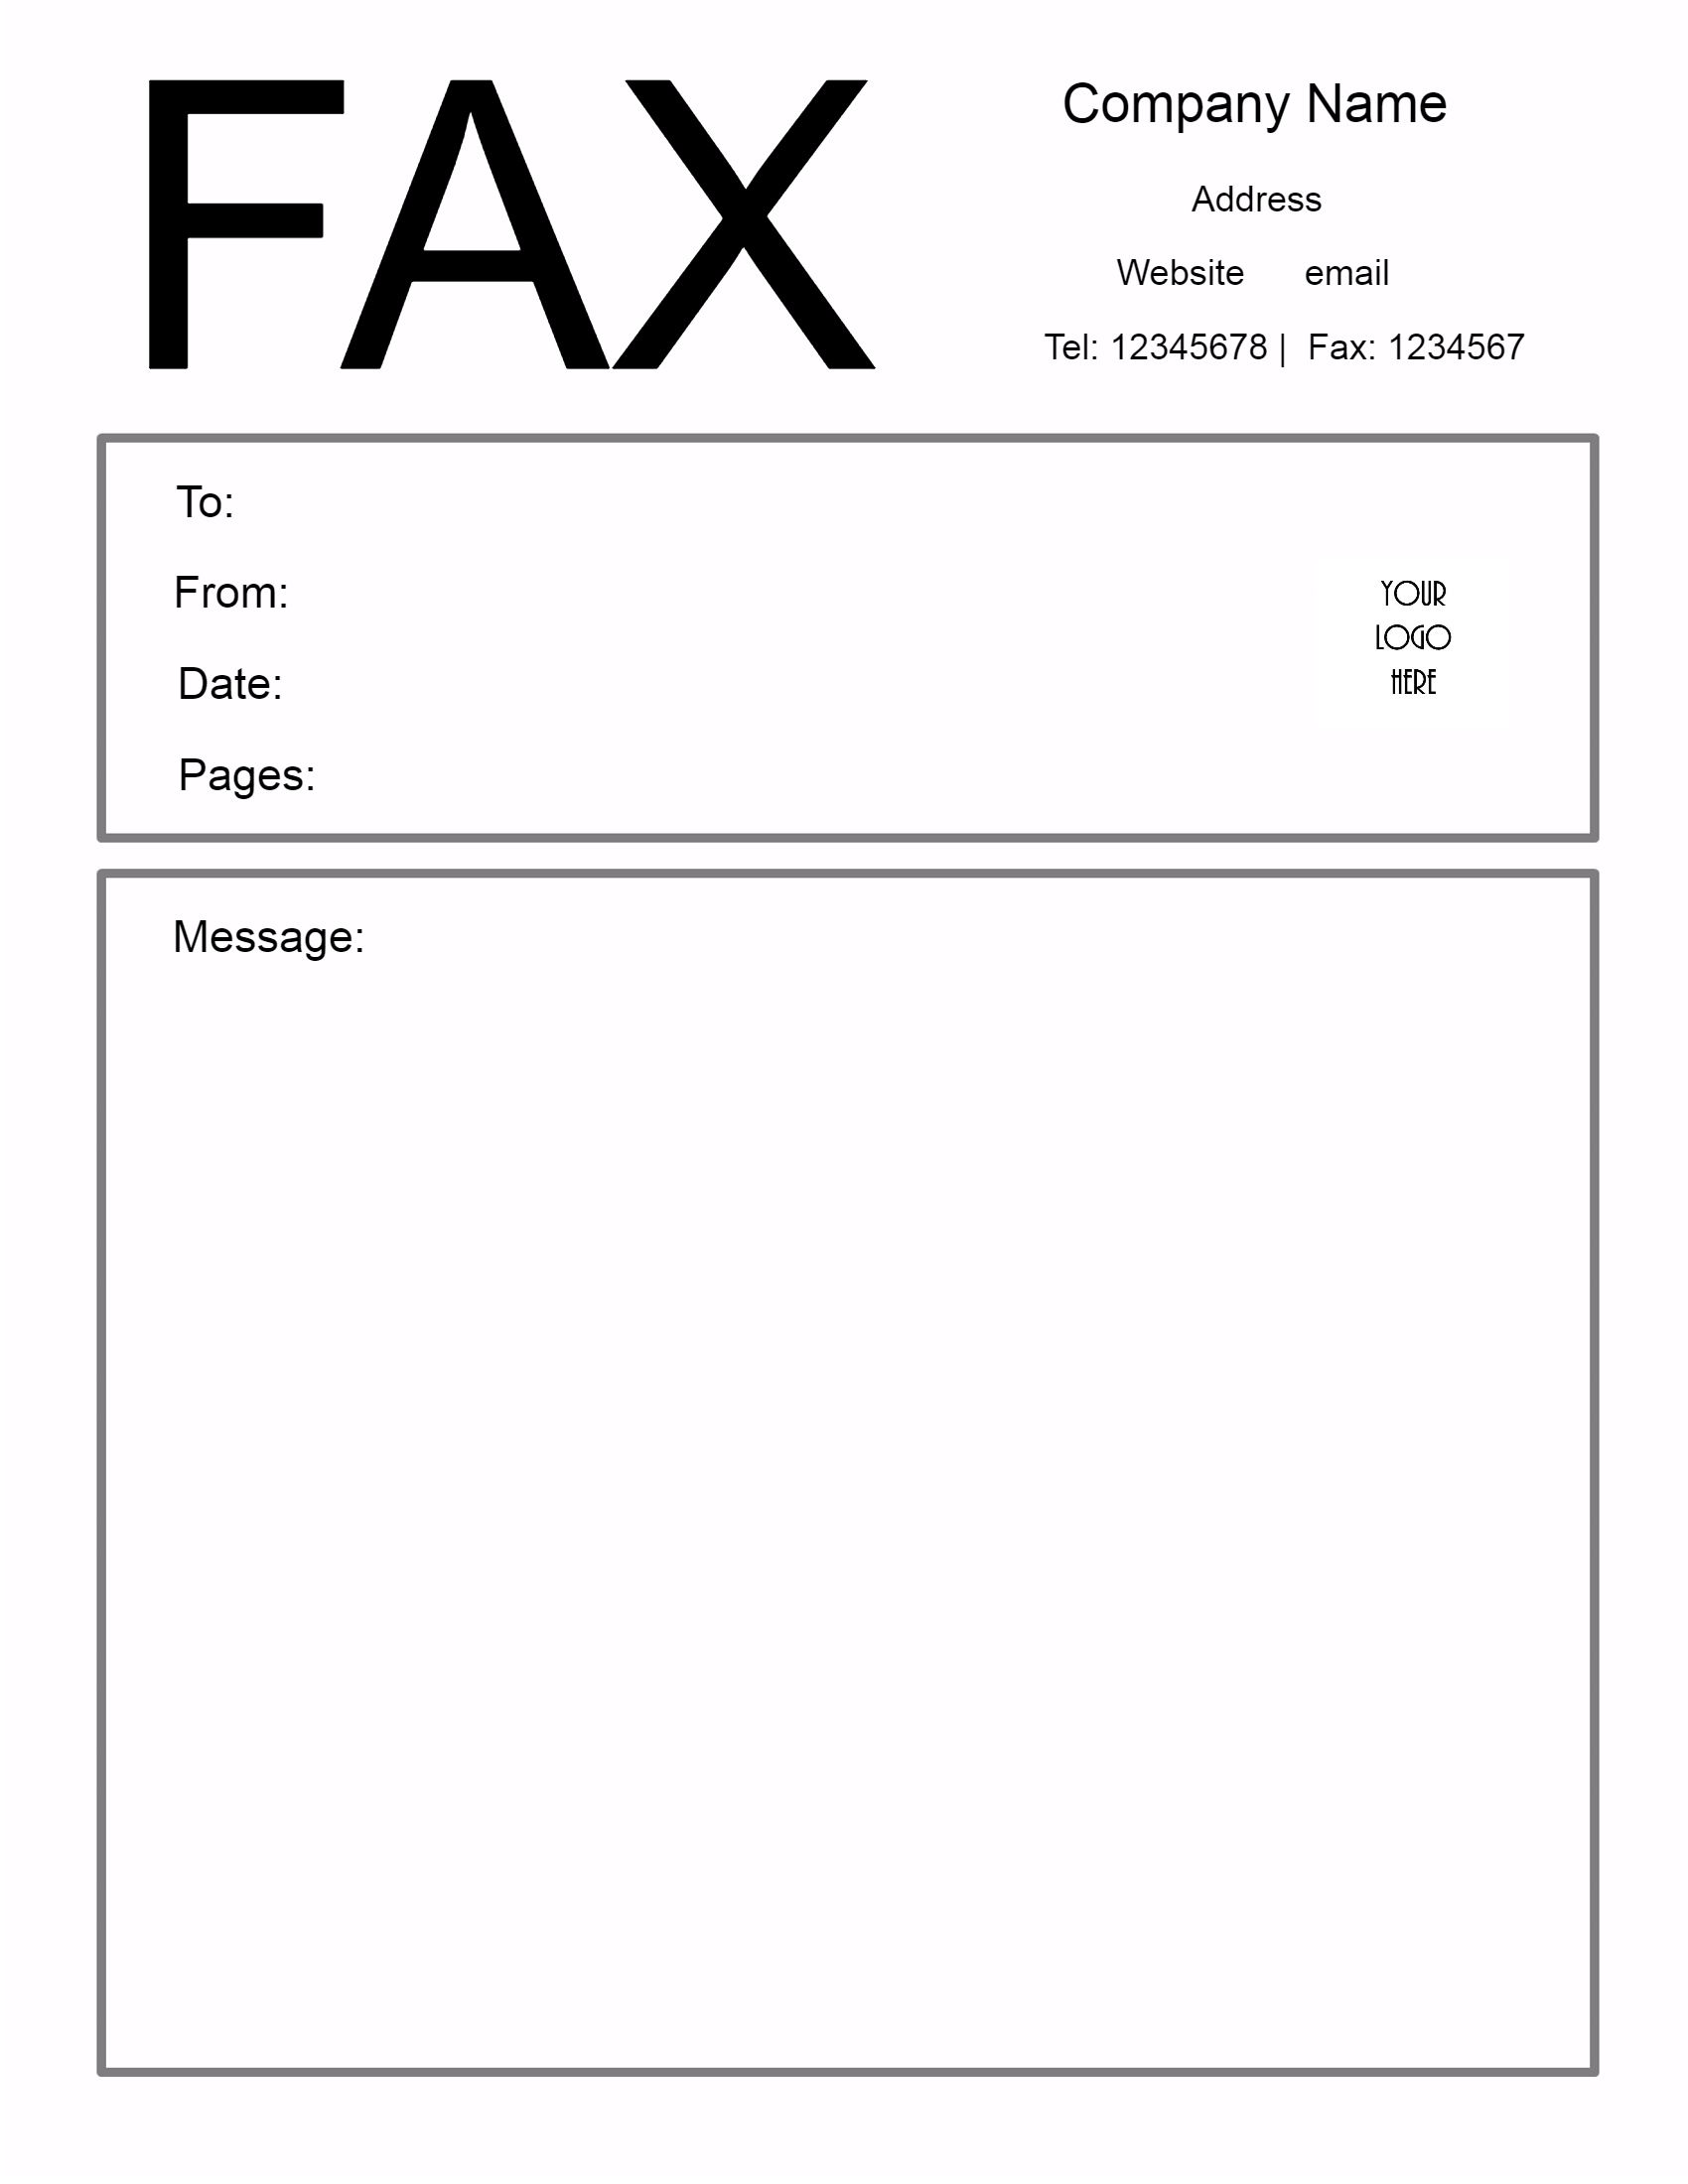 Fax cover sheet samples etamemibawa fax cover sheet samples spiritdancerdesigns